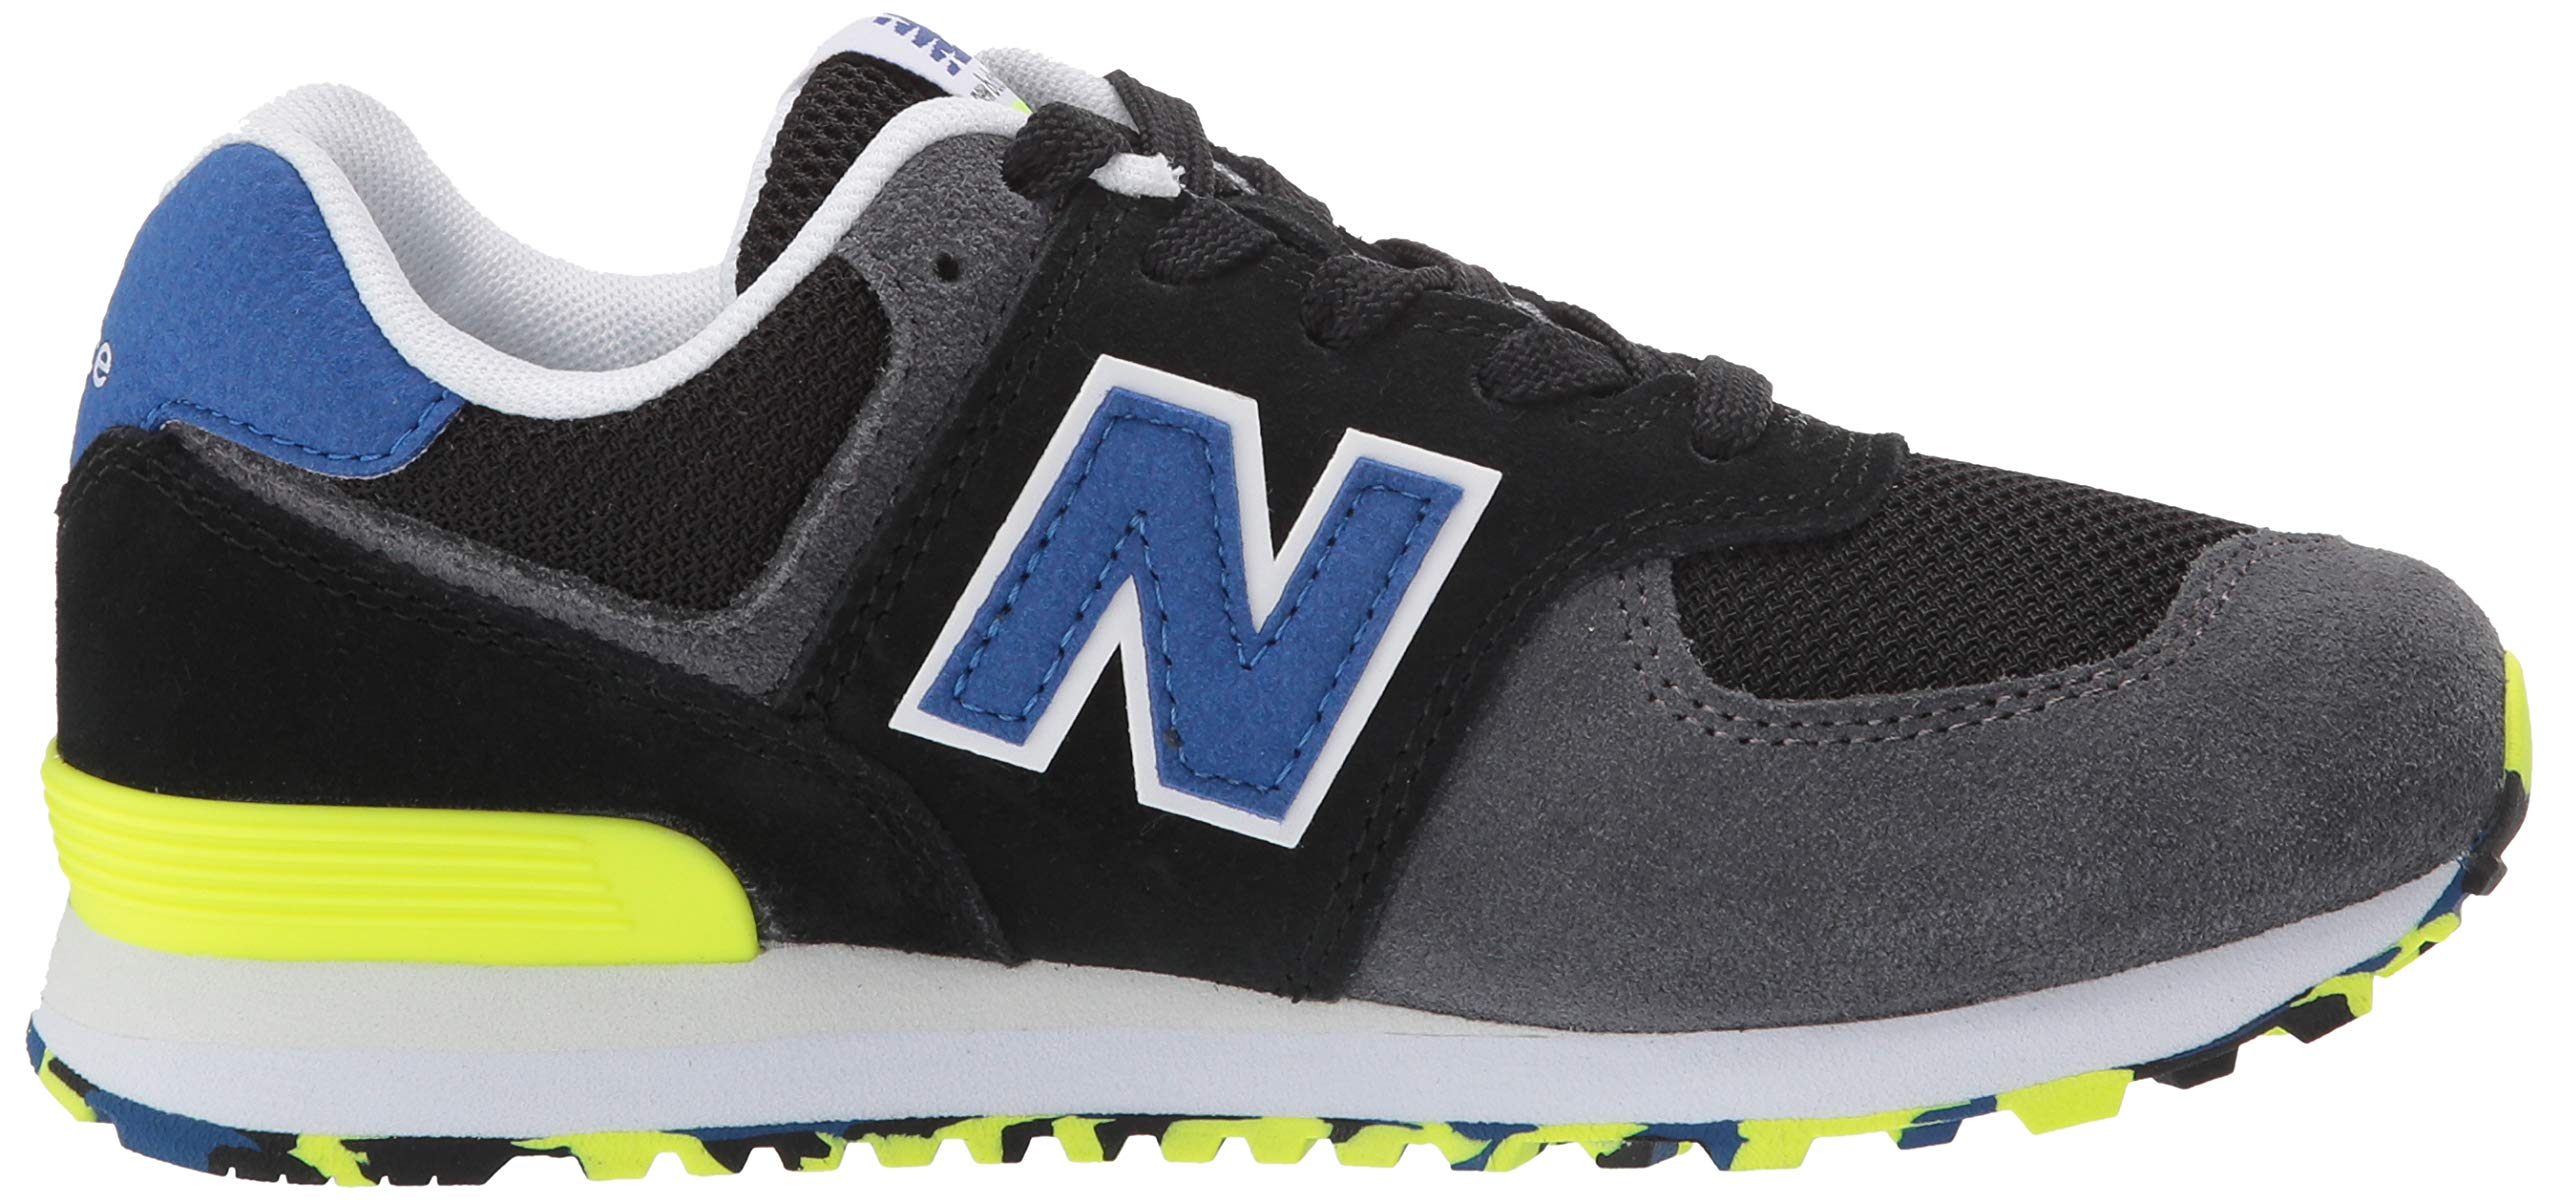 New Balance Boys' Iconic 574 Sneaker Black/Royal Blue 4.5 M US Big Kid by New Balance (Image #7)